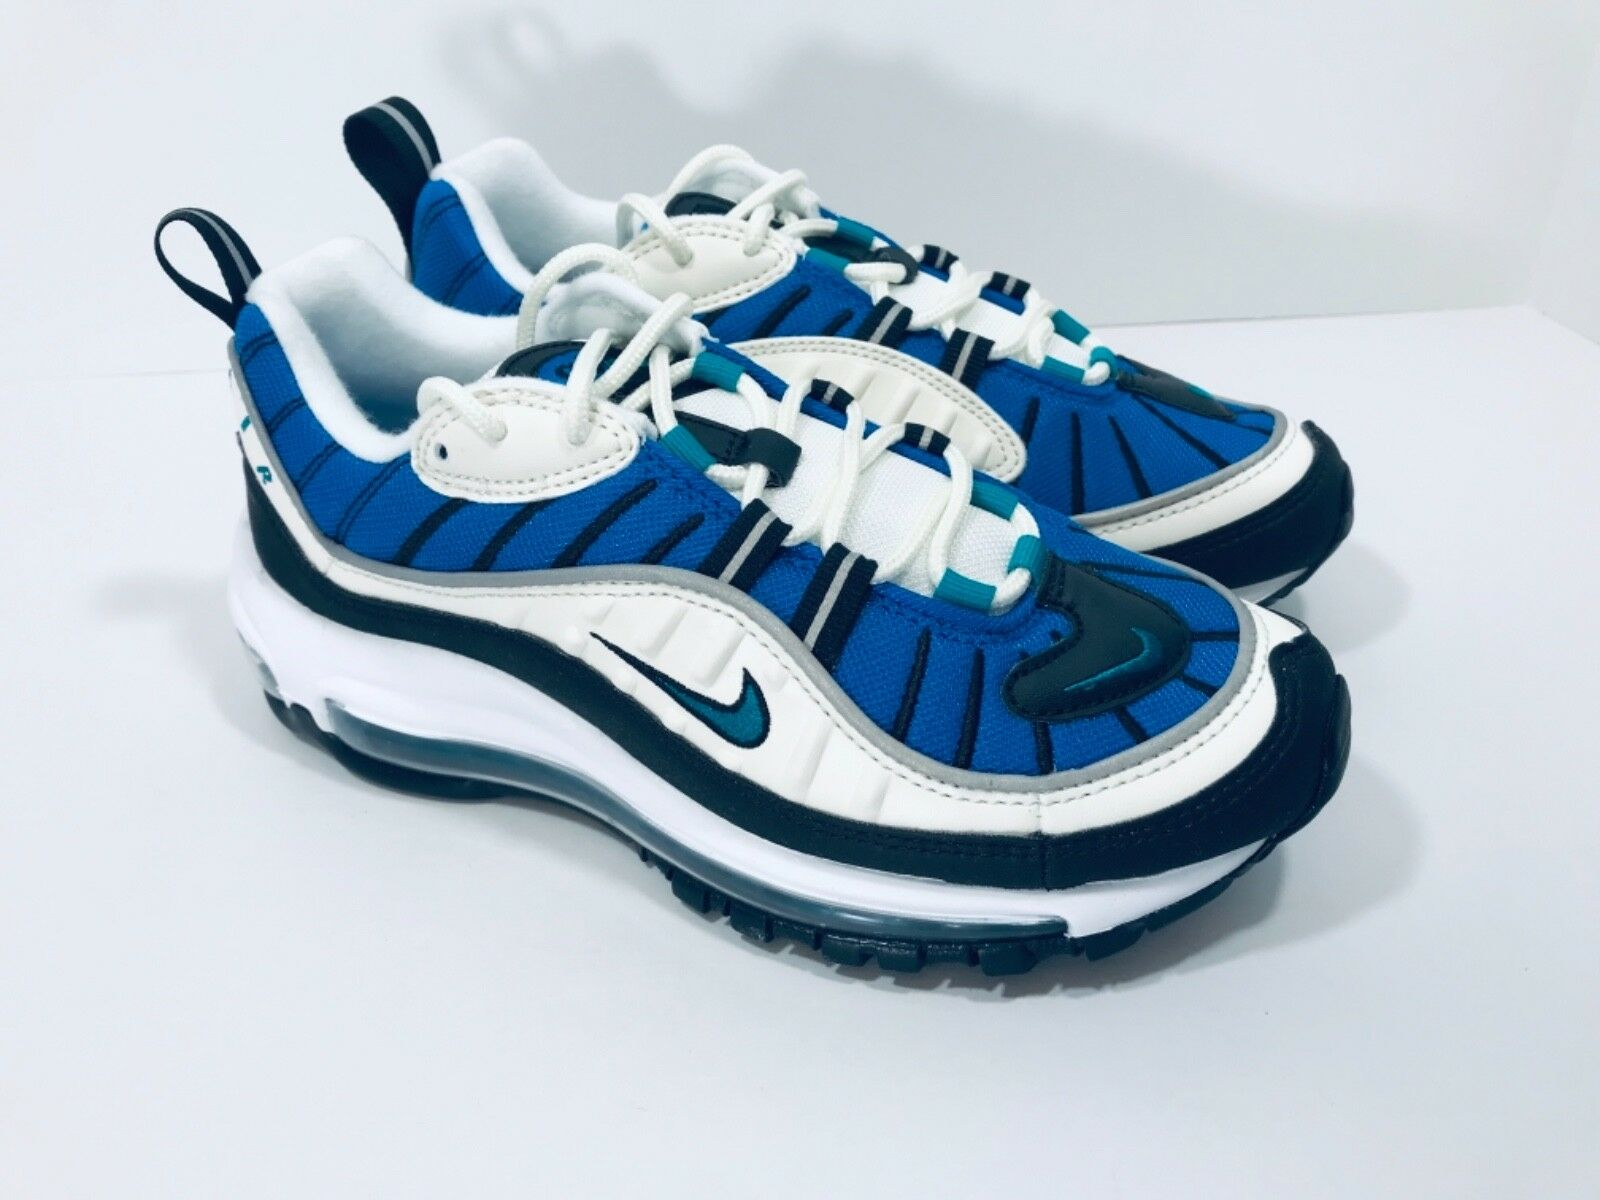 New Nike Air Max 98 Women's Select-a-Size Sail bluee Radiant Emerald AH6799-106